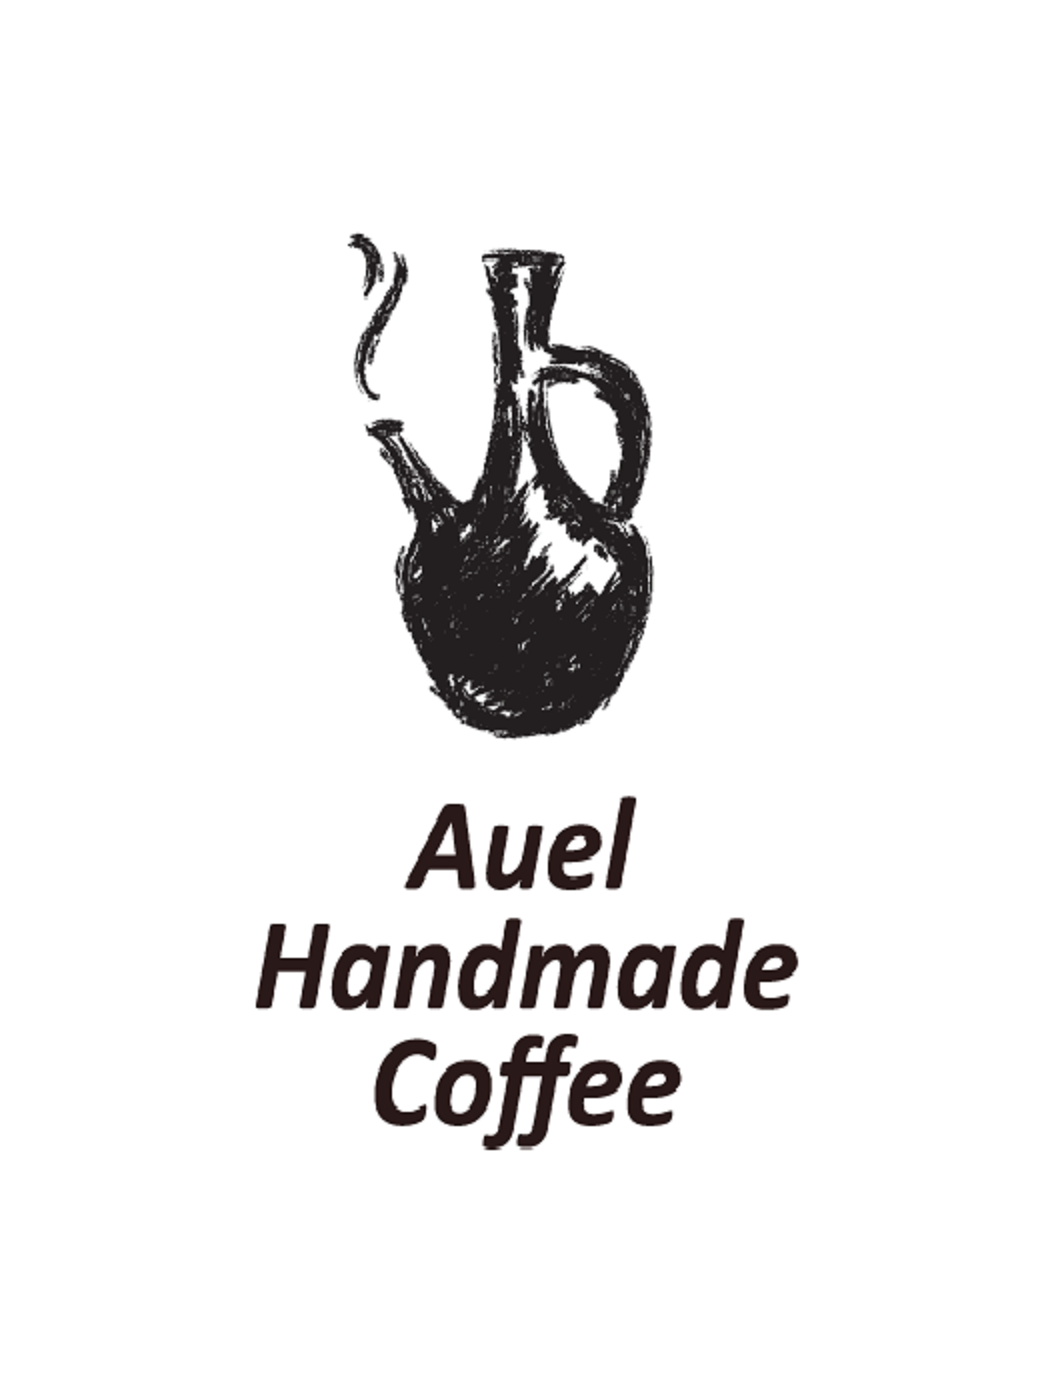 Auel Handmade Coffee